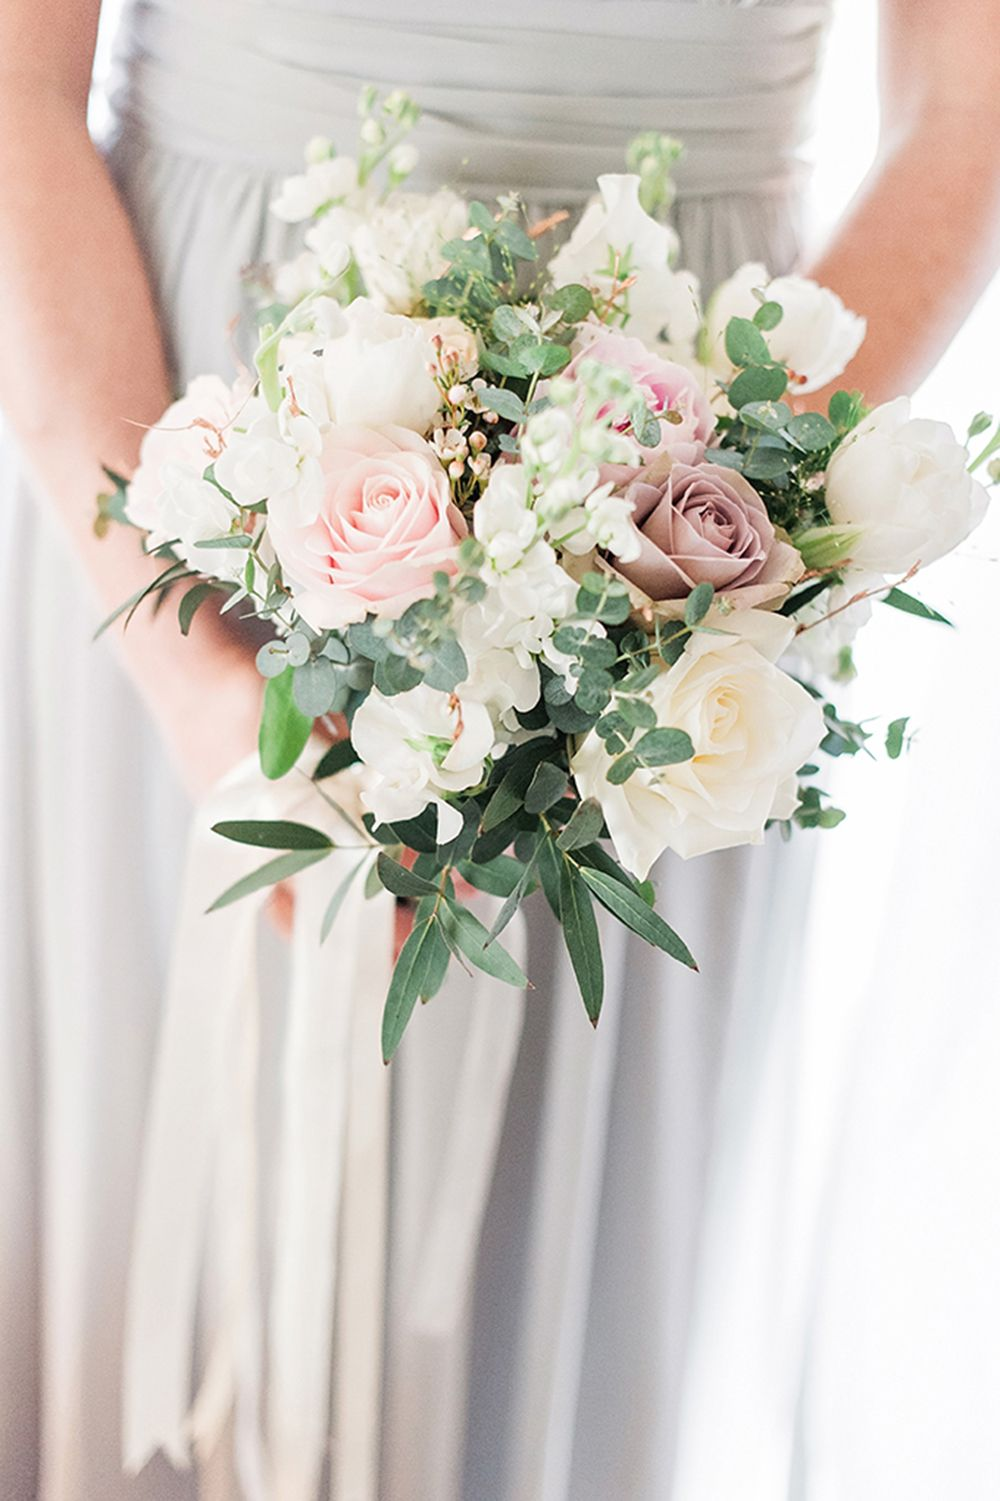 Edmondsham House Wedding Pretty Blush Pink & Gold Relaxed Garden #weddingbridesmaidbouquets